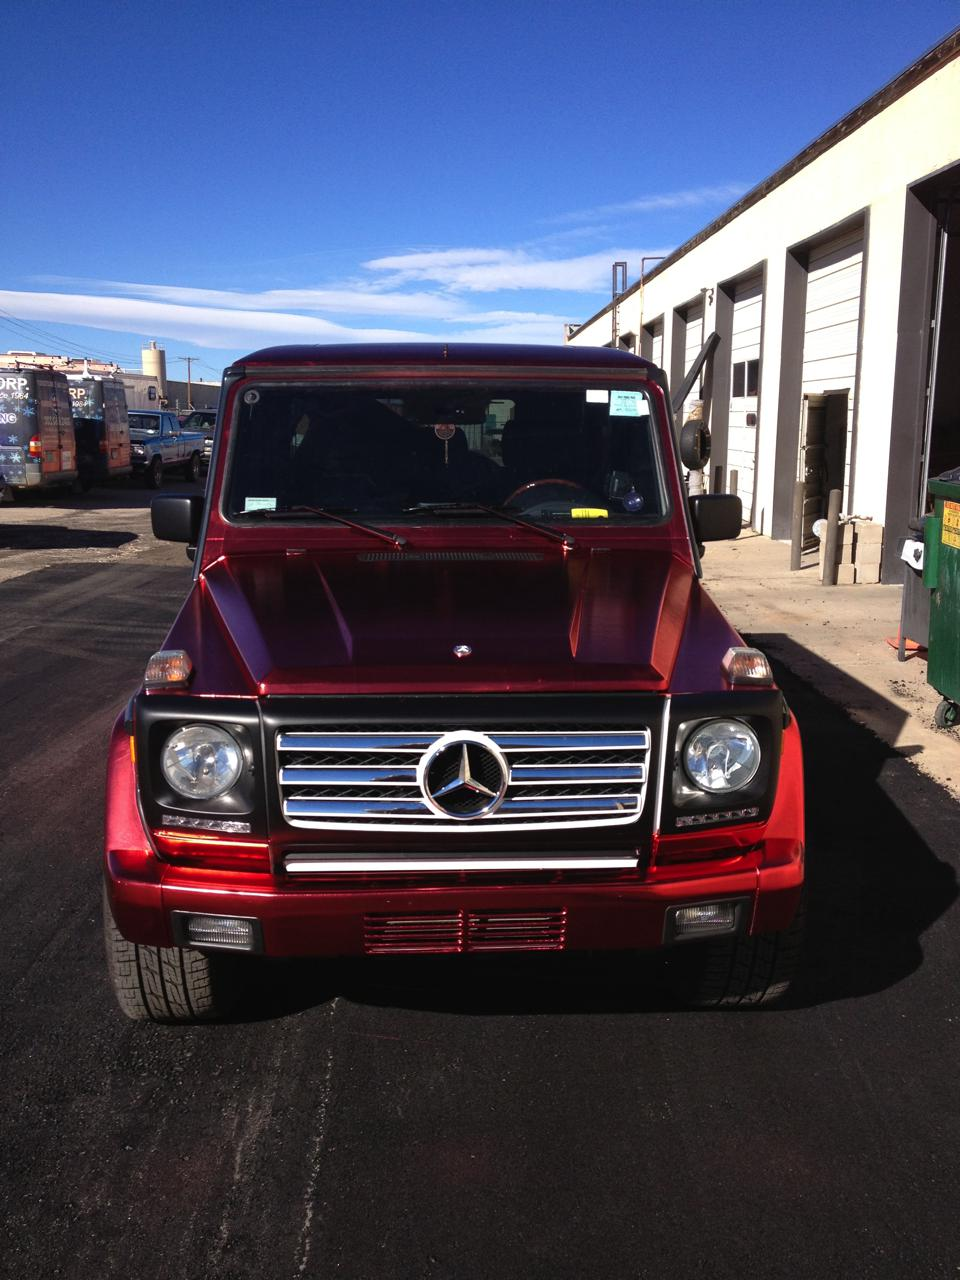 Metallic Red mercedes front